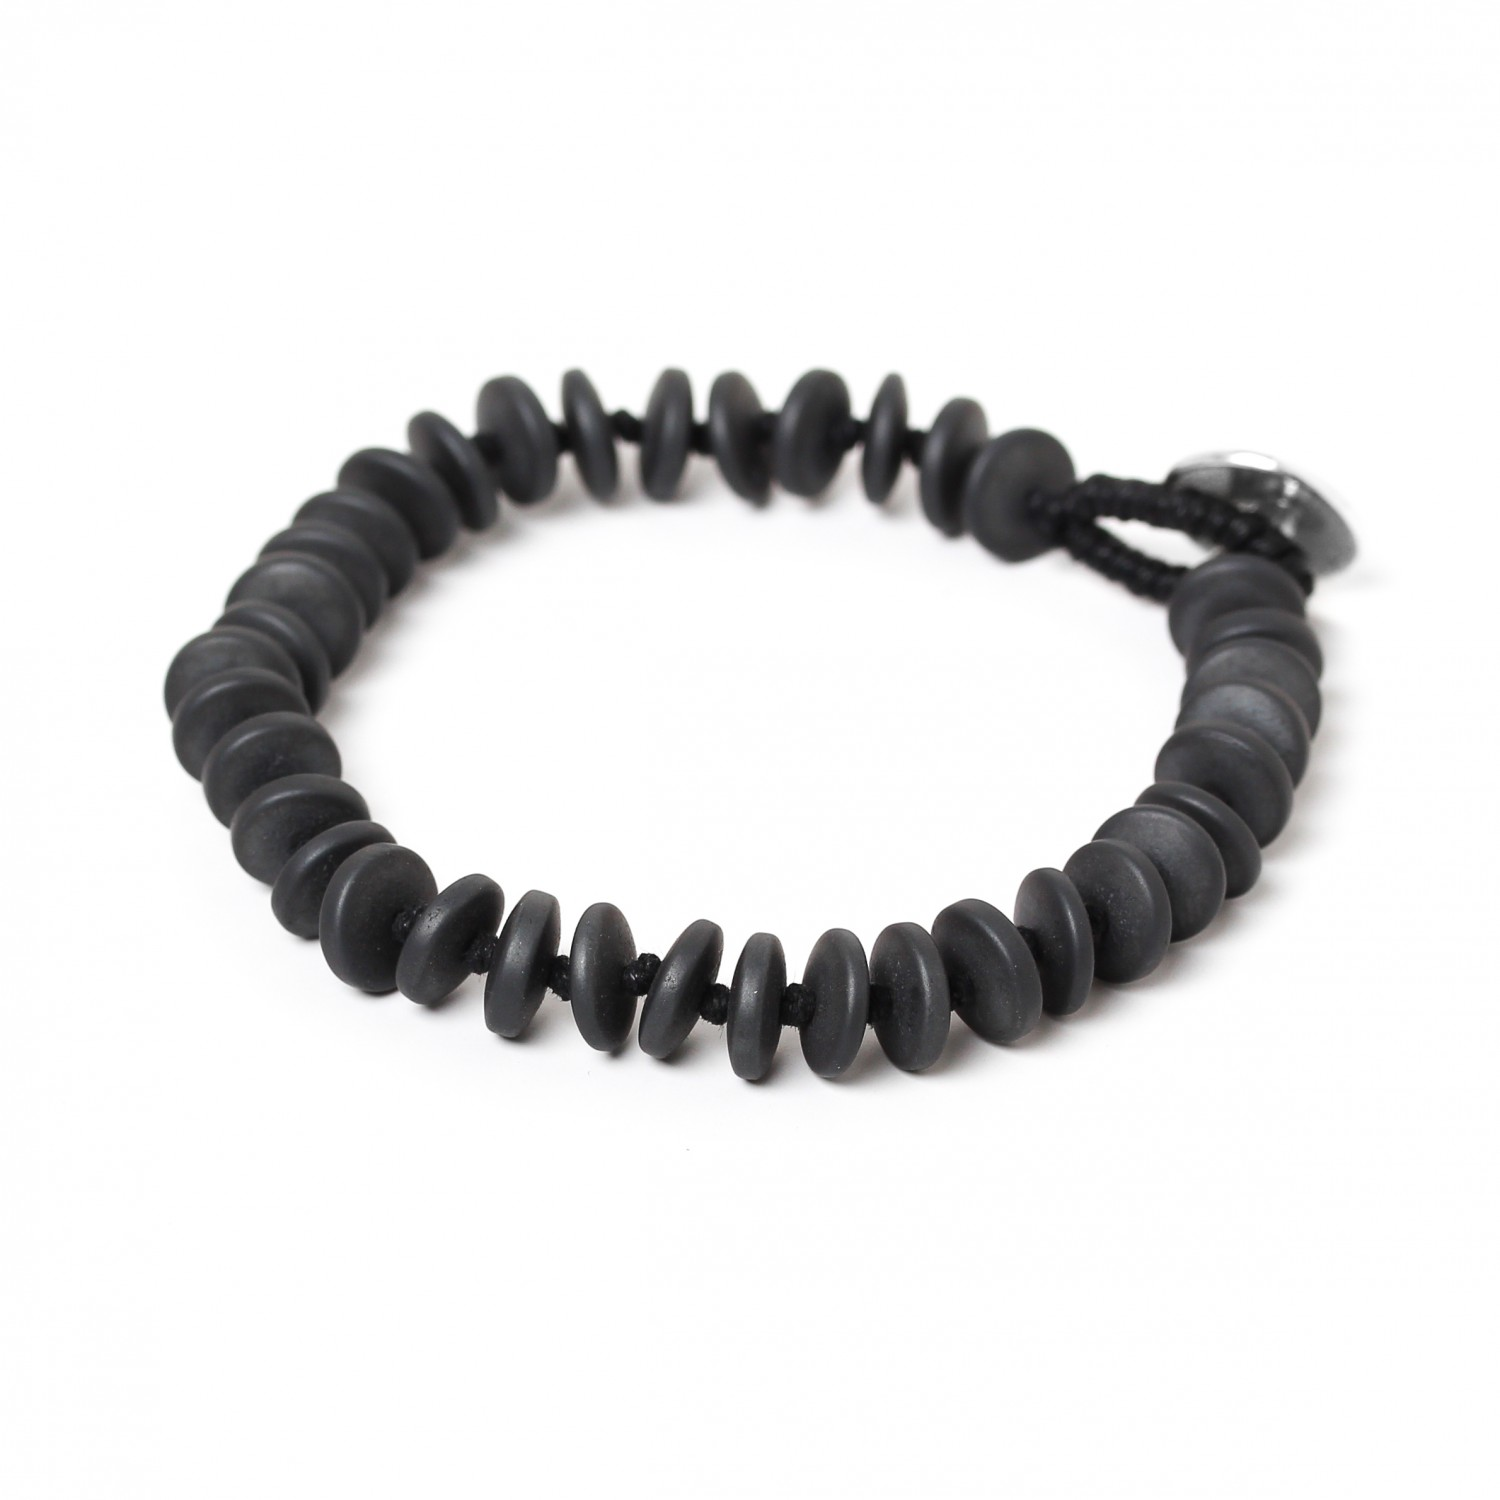 HEMATITE large wheels bracelet